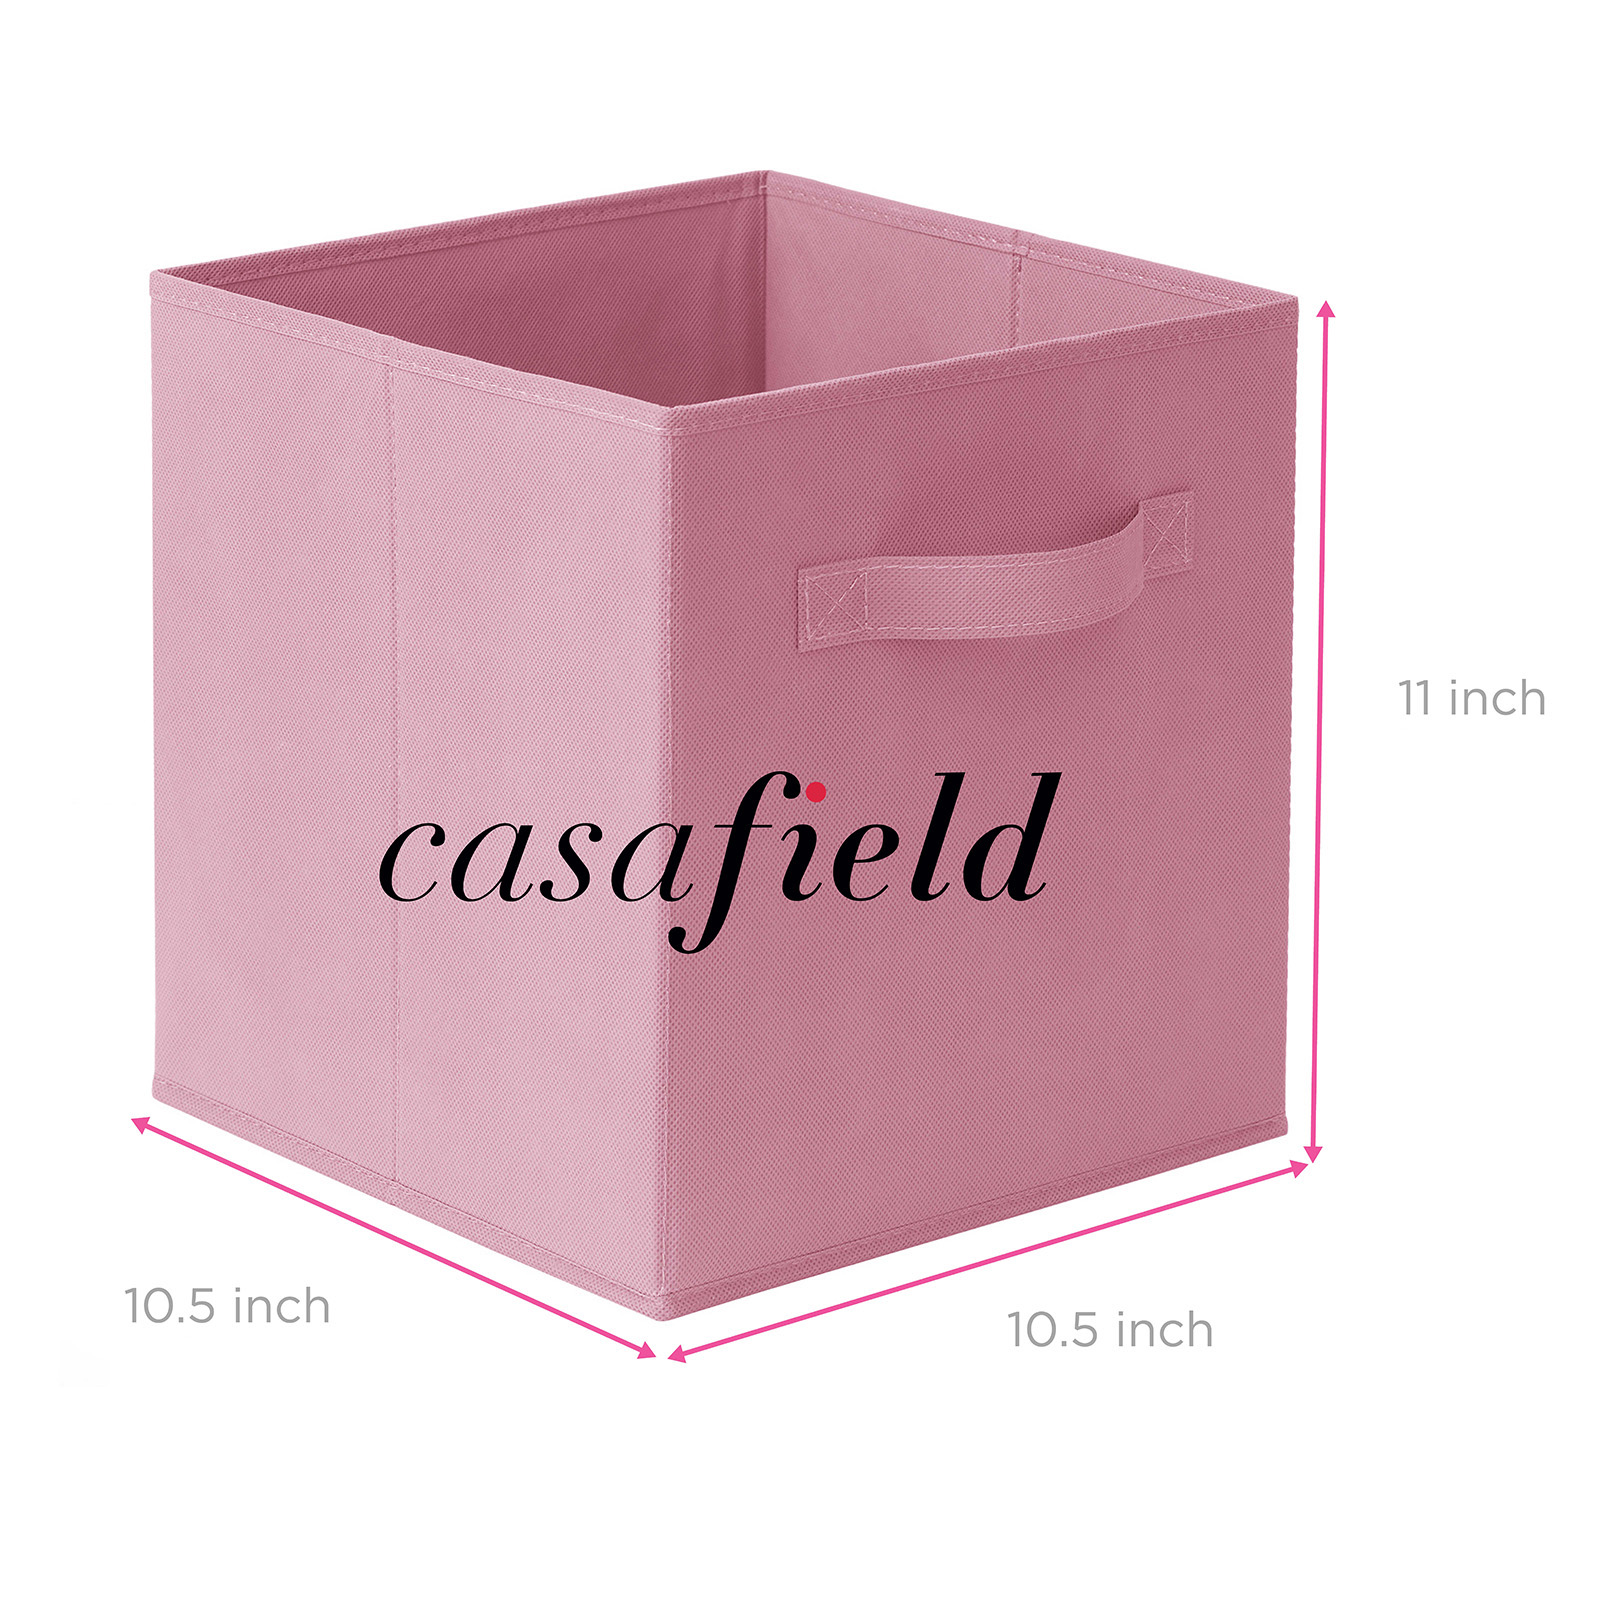 6-Collapsible-Foldable-Cloth-Fabric-Cubby-Cube-Storage-Bins-Baskets-for-Shelves thumbnail 41